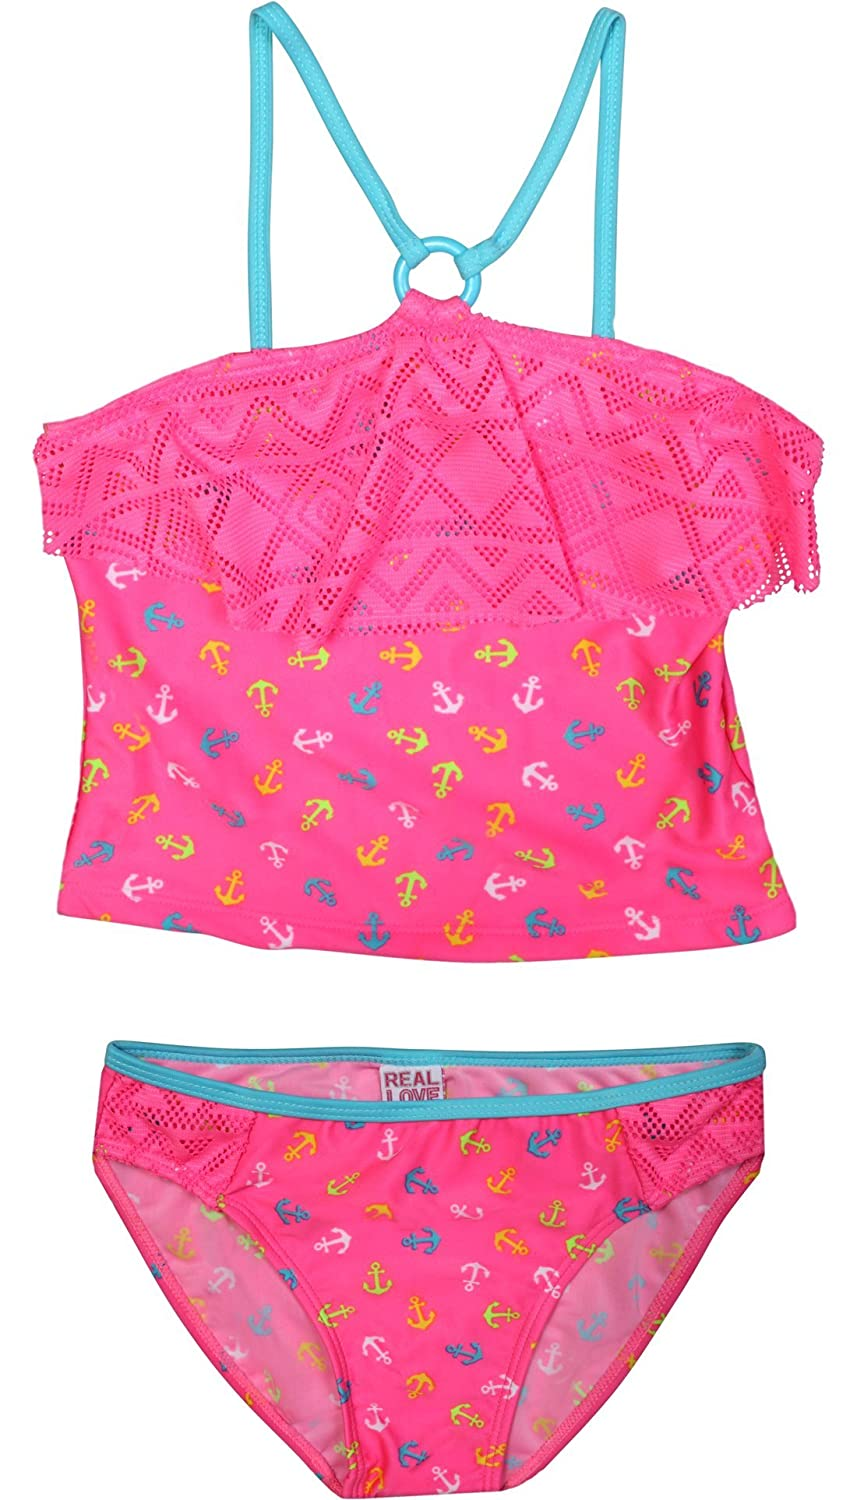 4b4d60762c91 Real Love Girls' Tankini Bathing Suit Separates (2 Pack) [1541592753 ...